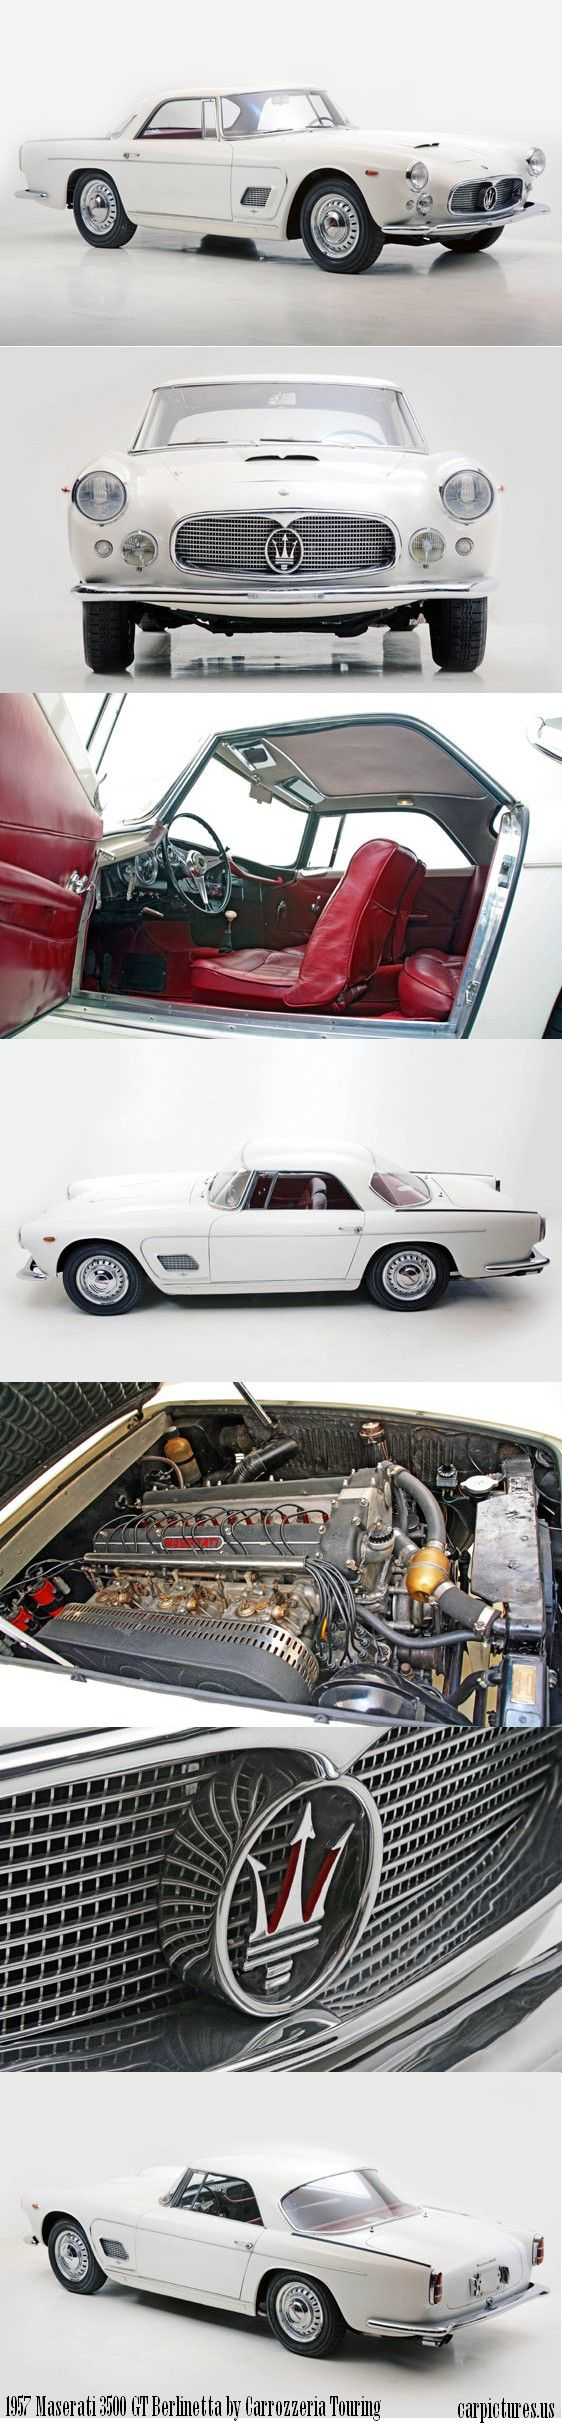 1957-maserati-3500-gt-berlinetta-by-carrozzeria-touring